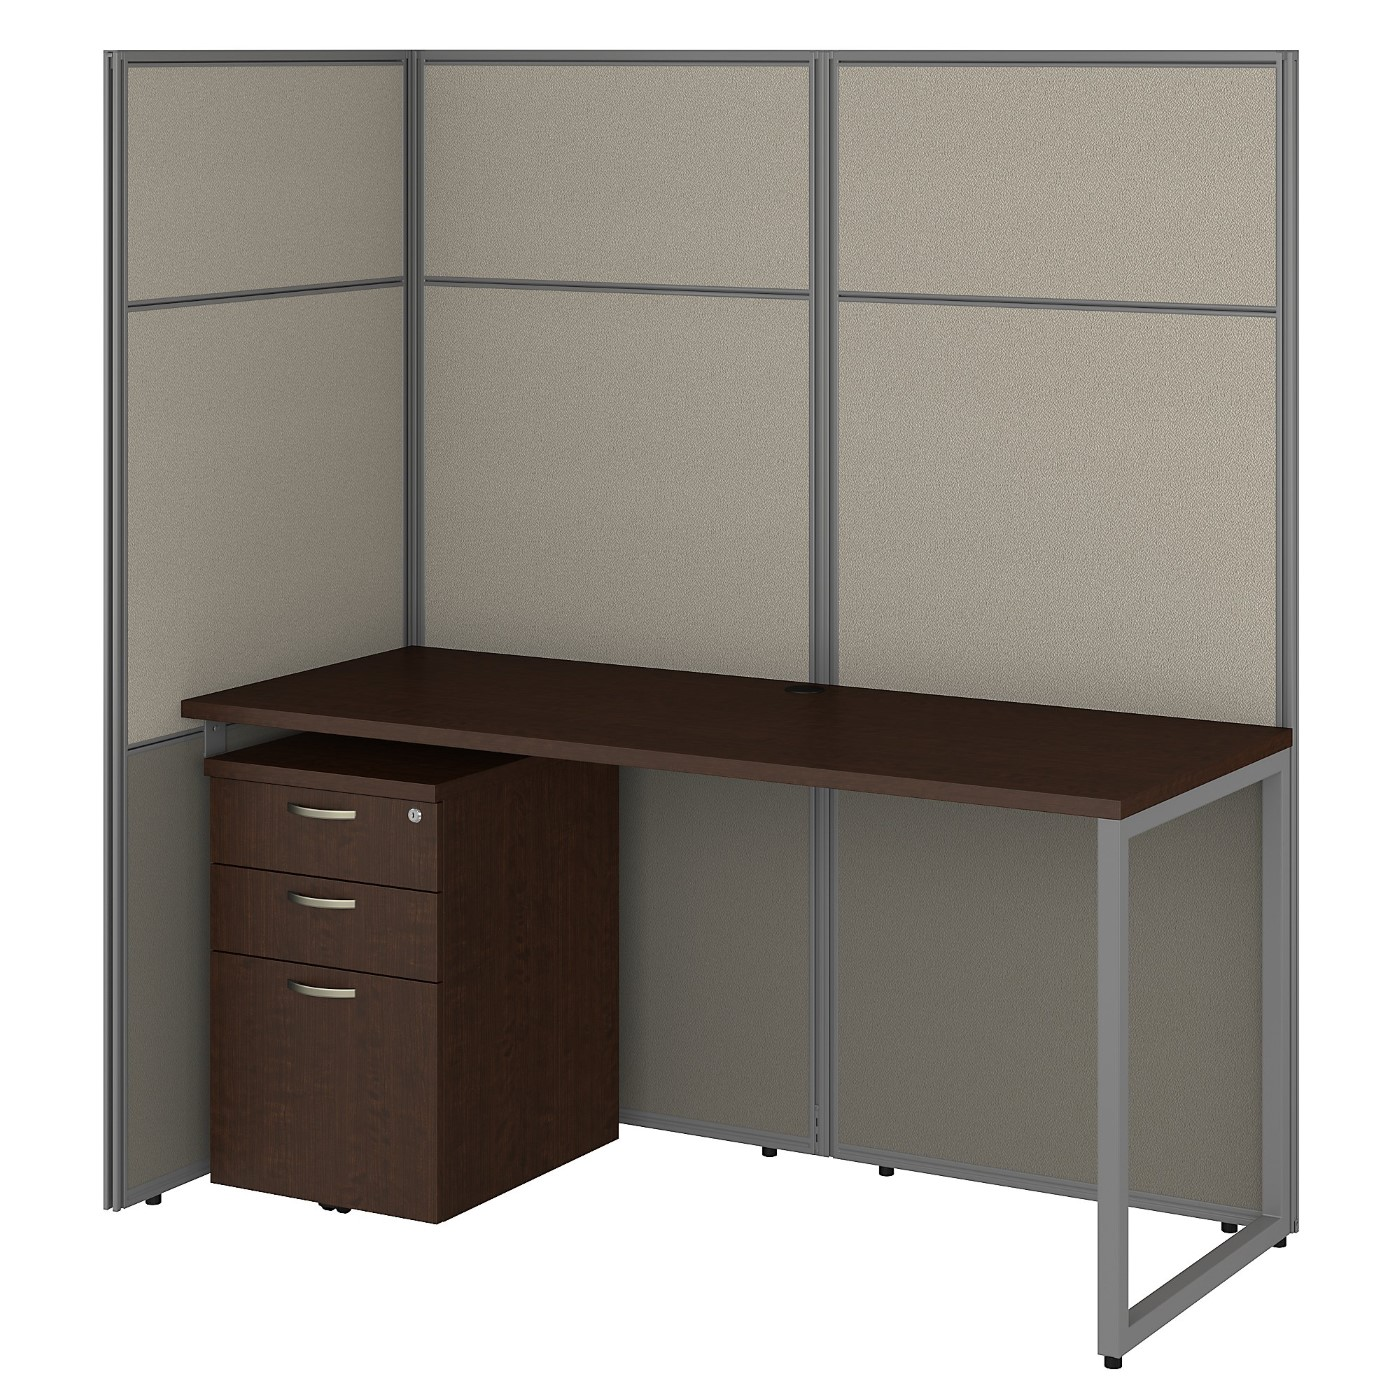 <font color=#c60><b>BUSH BUSINESS FURNITURE EASY OFFICE 60W CUBICLE DESK WITH FILE CABINET AND 66H OPEN PANELS WORKSTATION. FREE SHIPPING 30H x 72L x 72W</font></b>